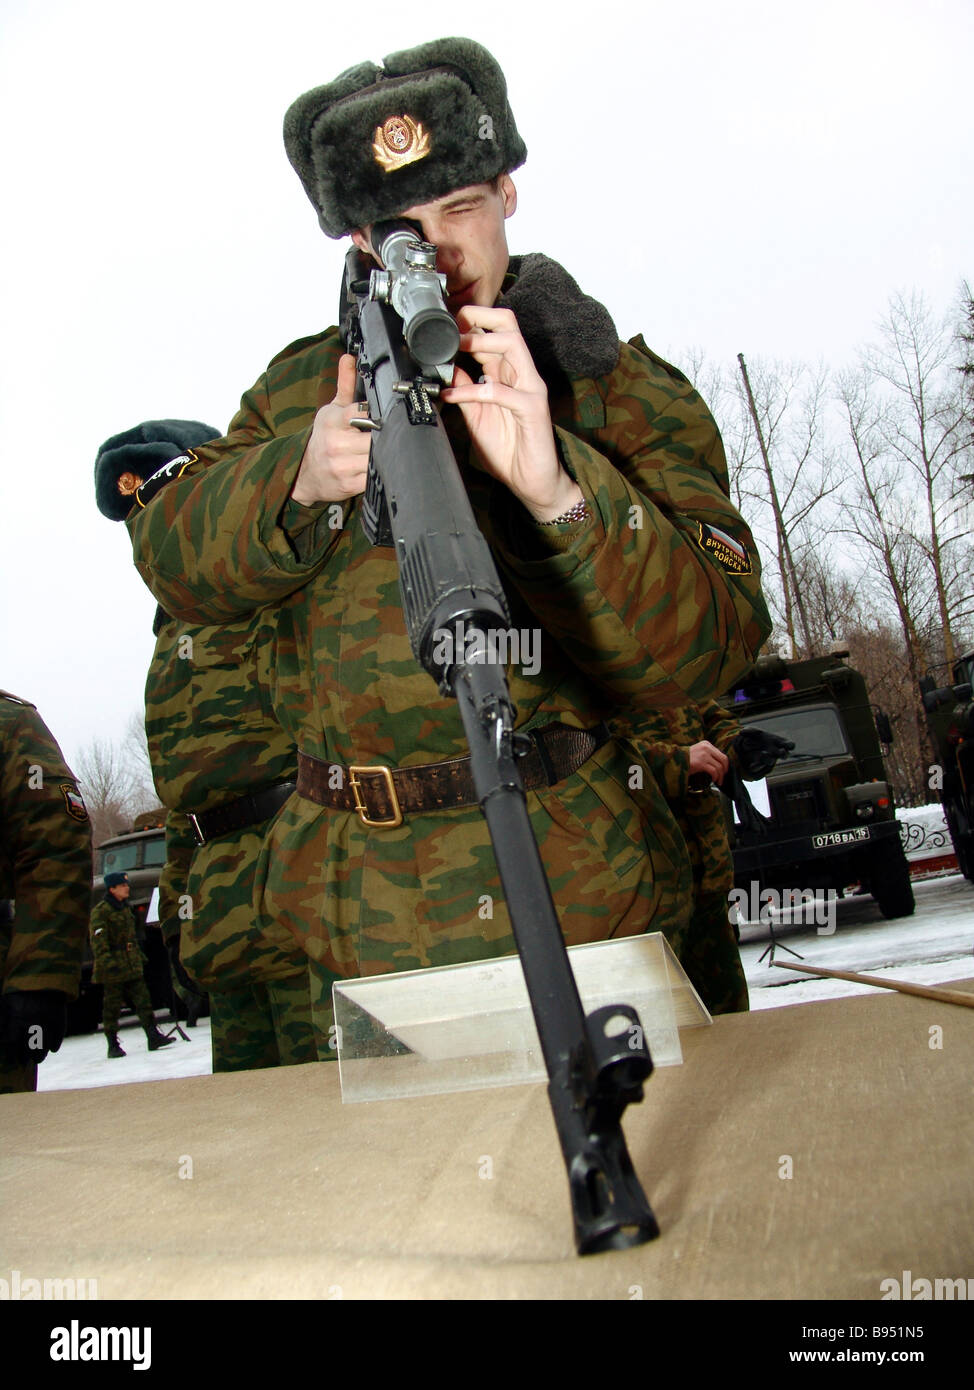 Exibition of new arms models at the special tactical division of the Russian Interior Ministry troops - Stock Image